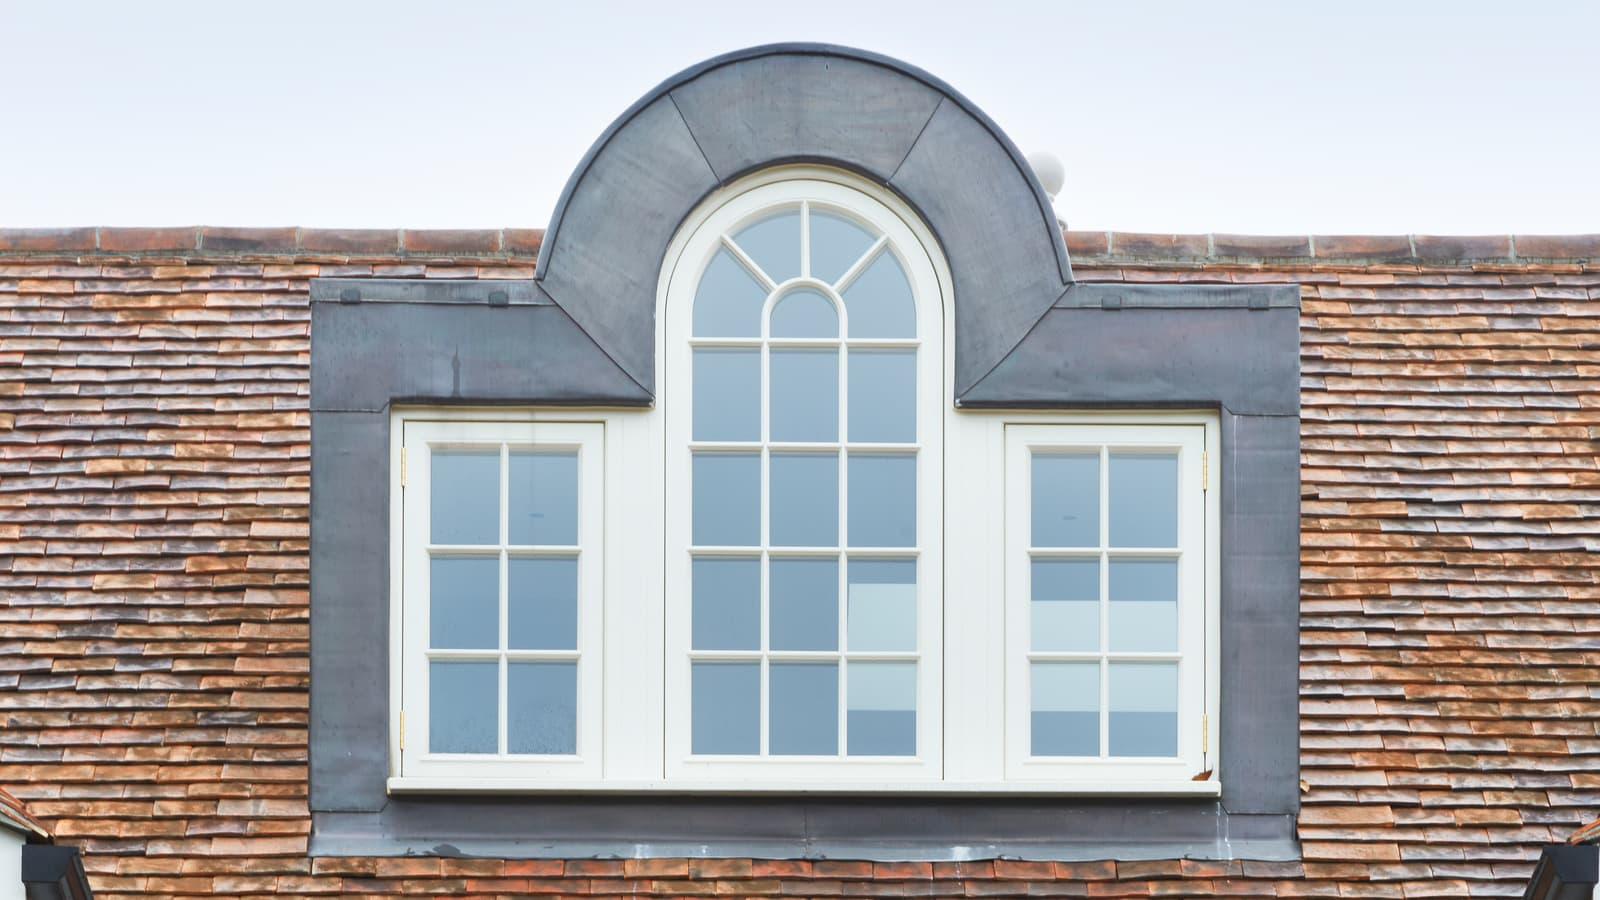 Central shaped feature casement window on the second floor